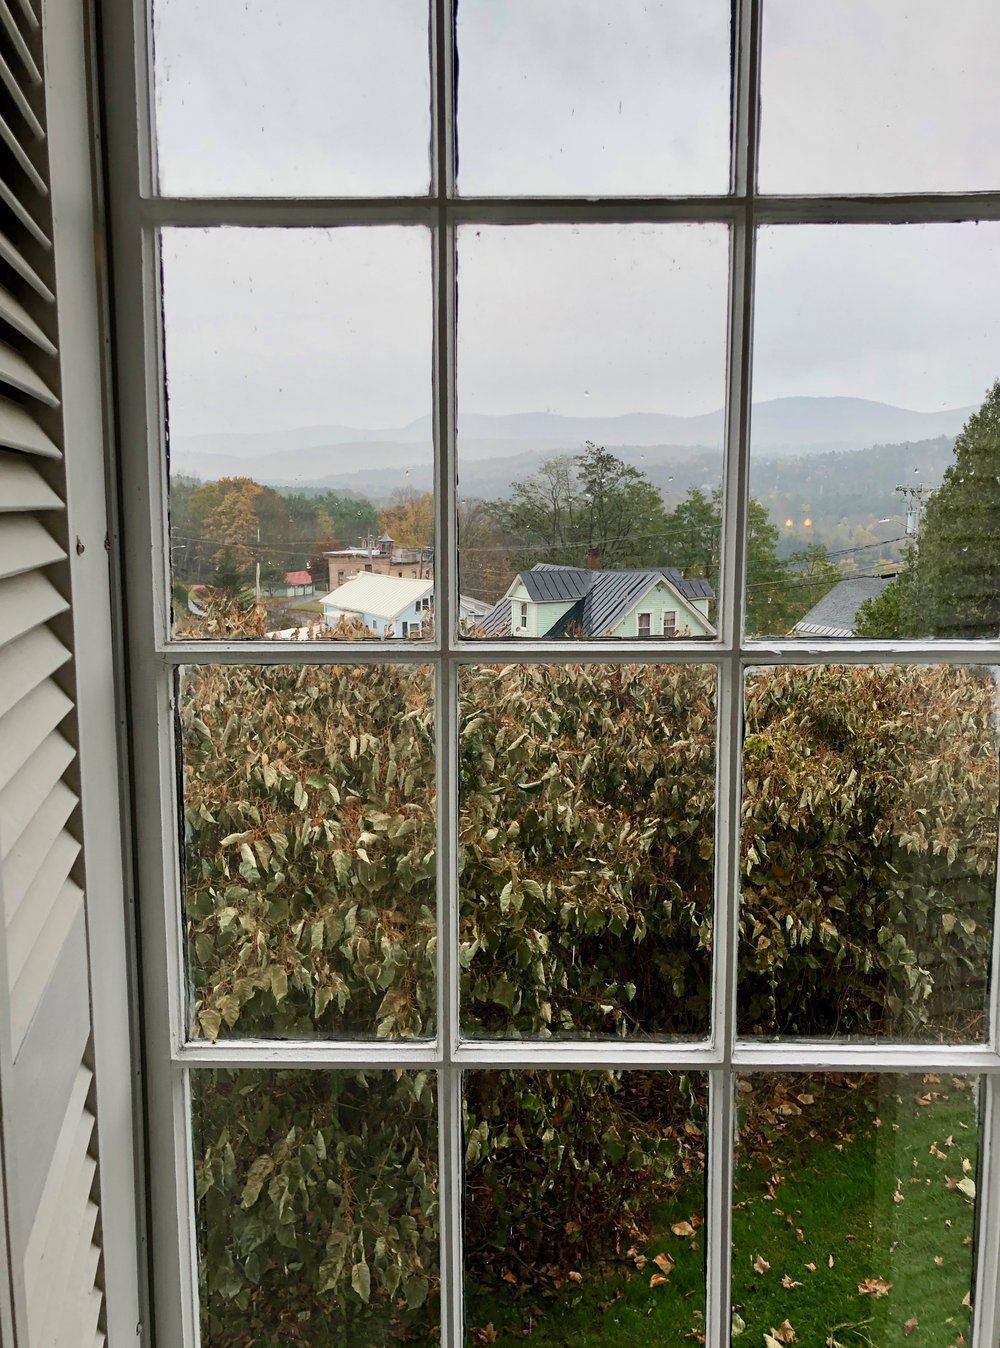 rainy new england seen from the window of the church